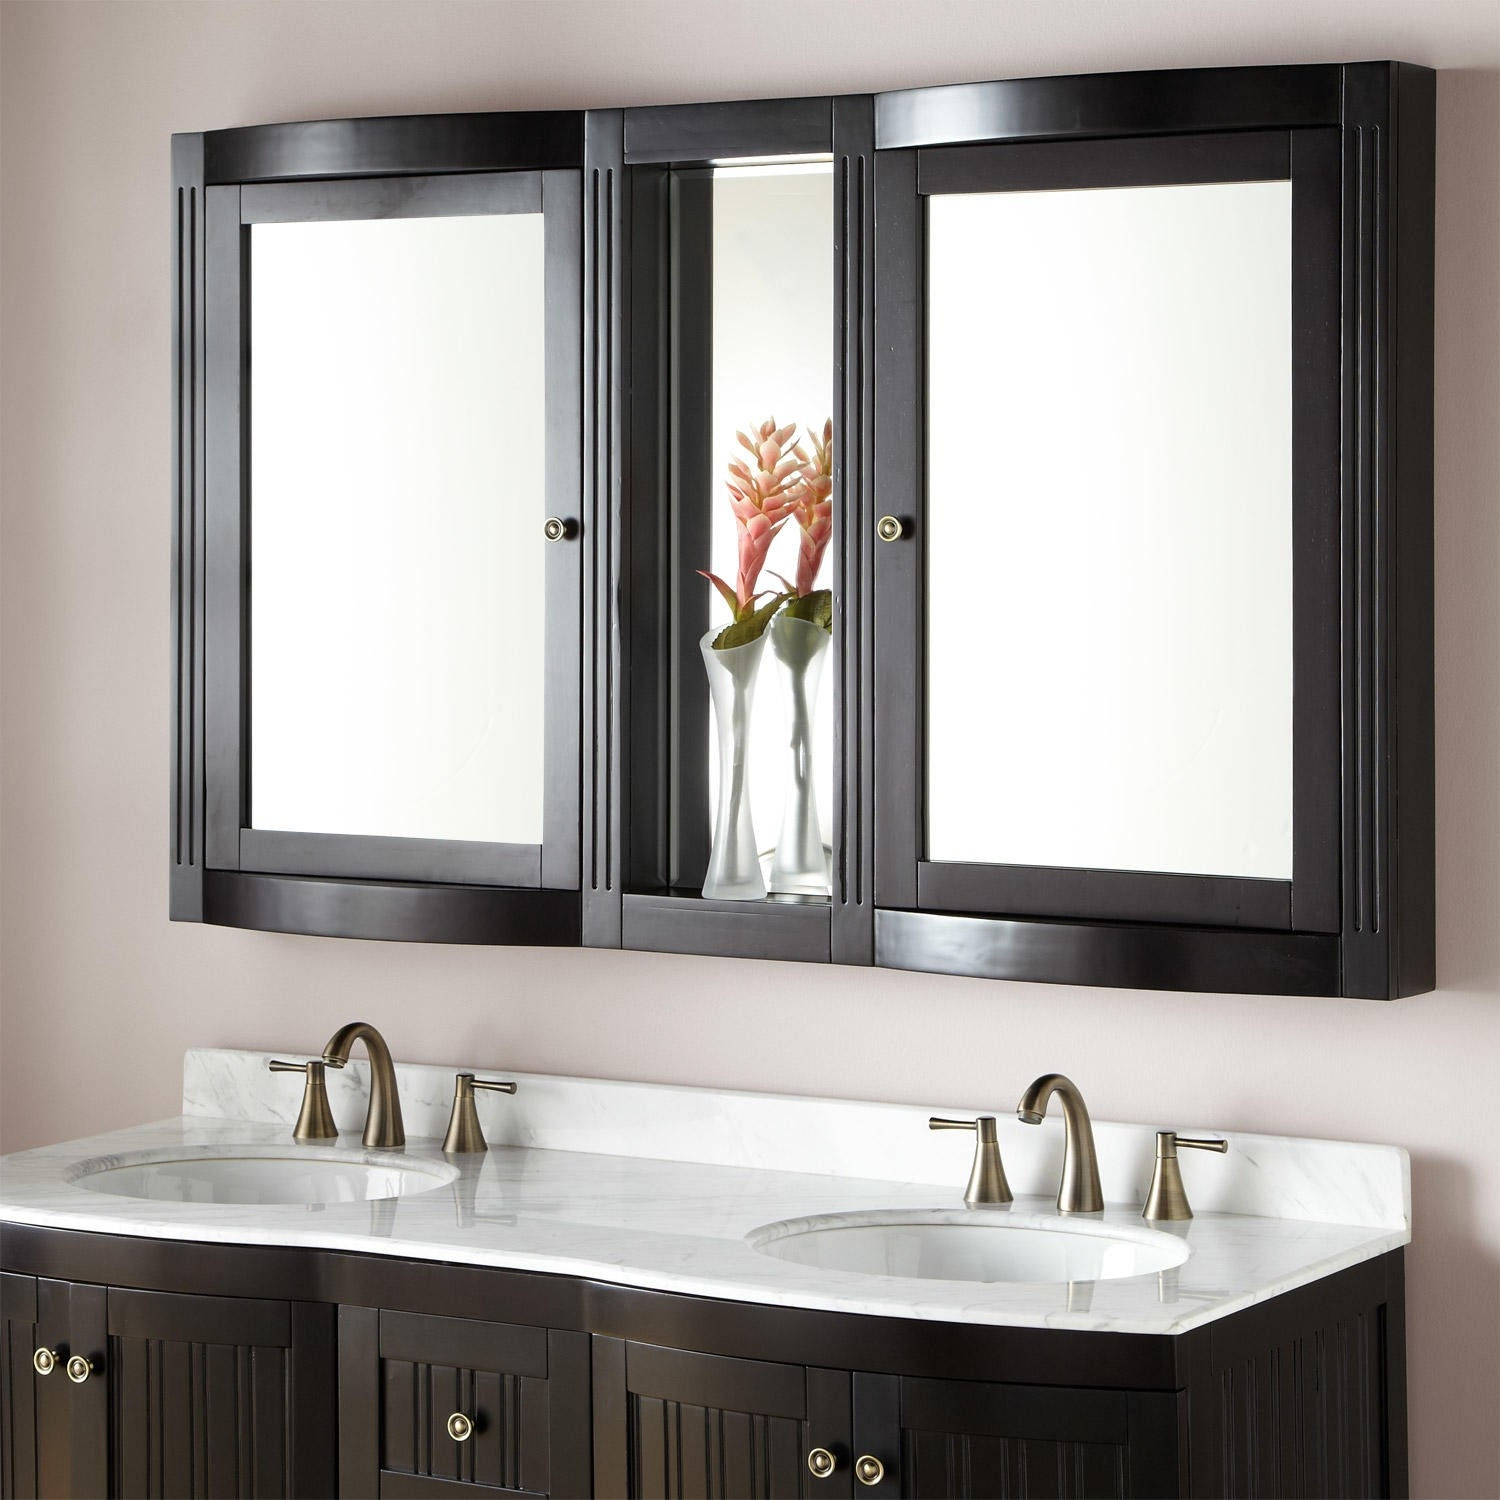 Pictures Of Medicine Cabinets In Bathrooms